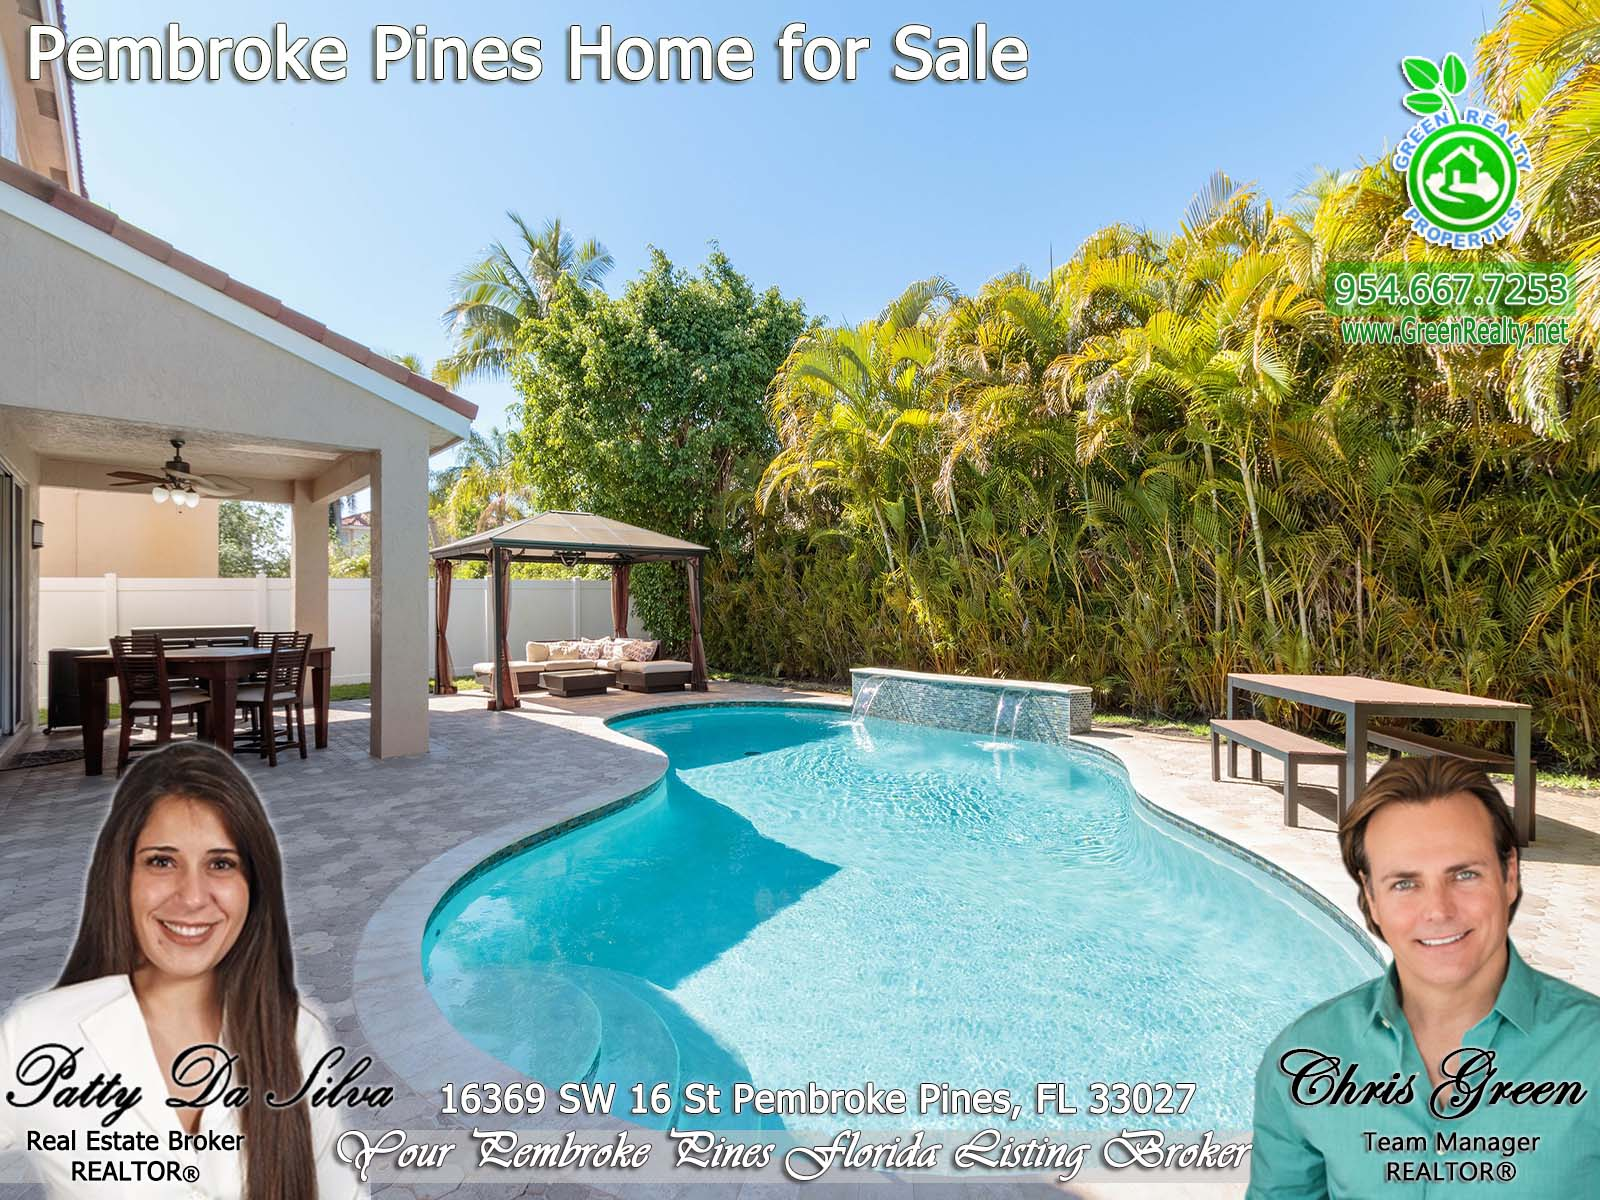 24 Pembroke Pines Realtor Broker Patty Da Silva south florida listing (25)